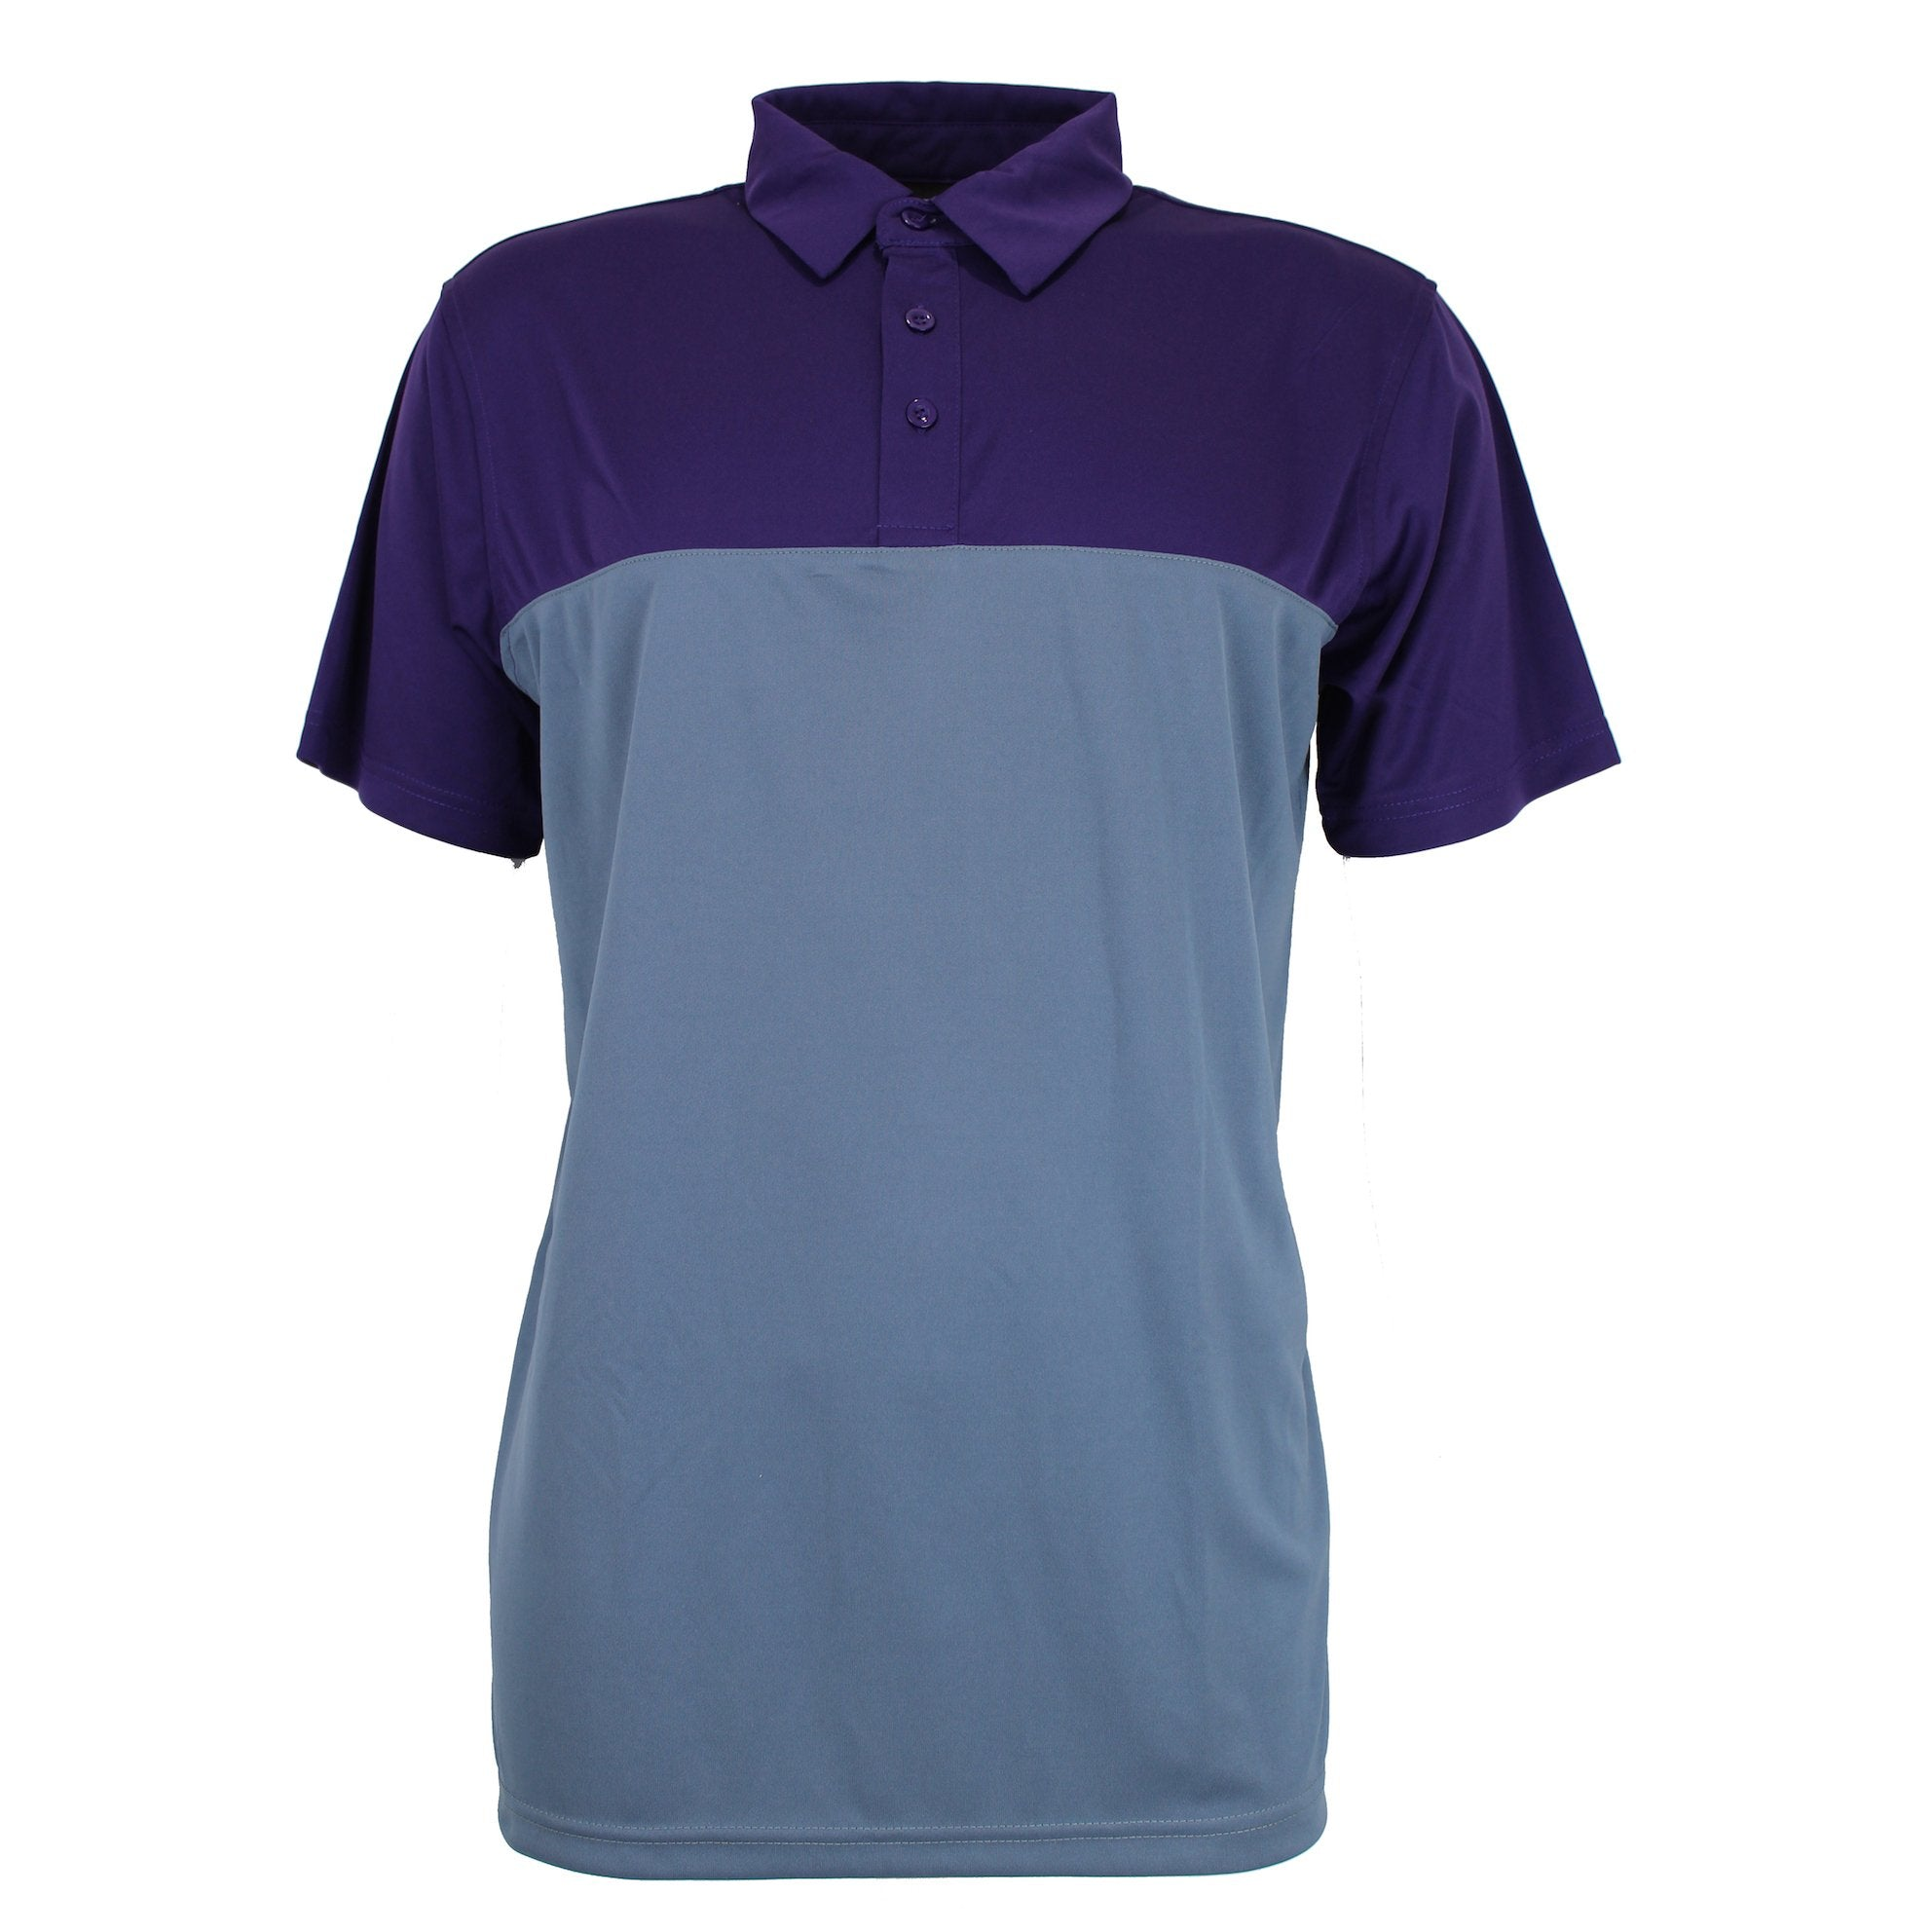 Druids Golf - Mens Block Polo 2018 (Purple/Grey)